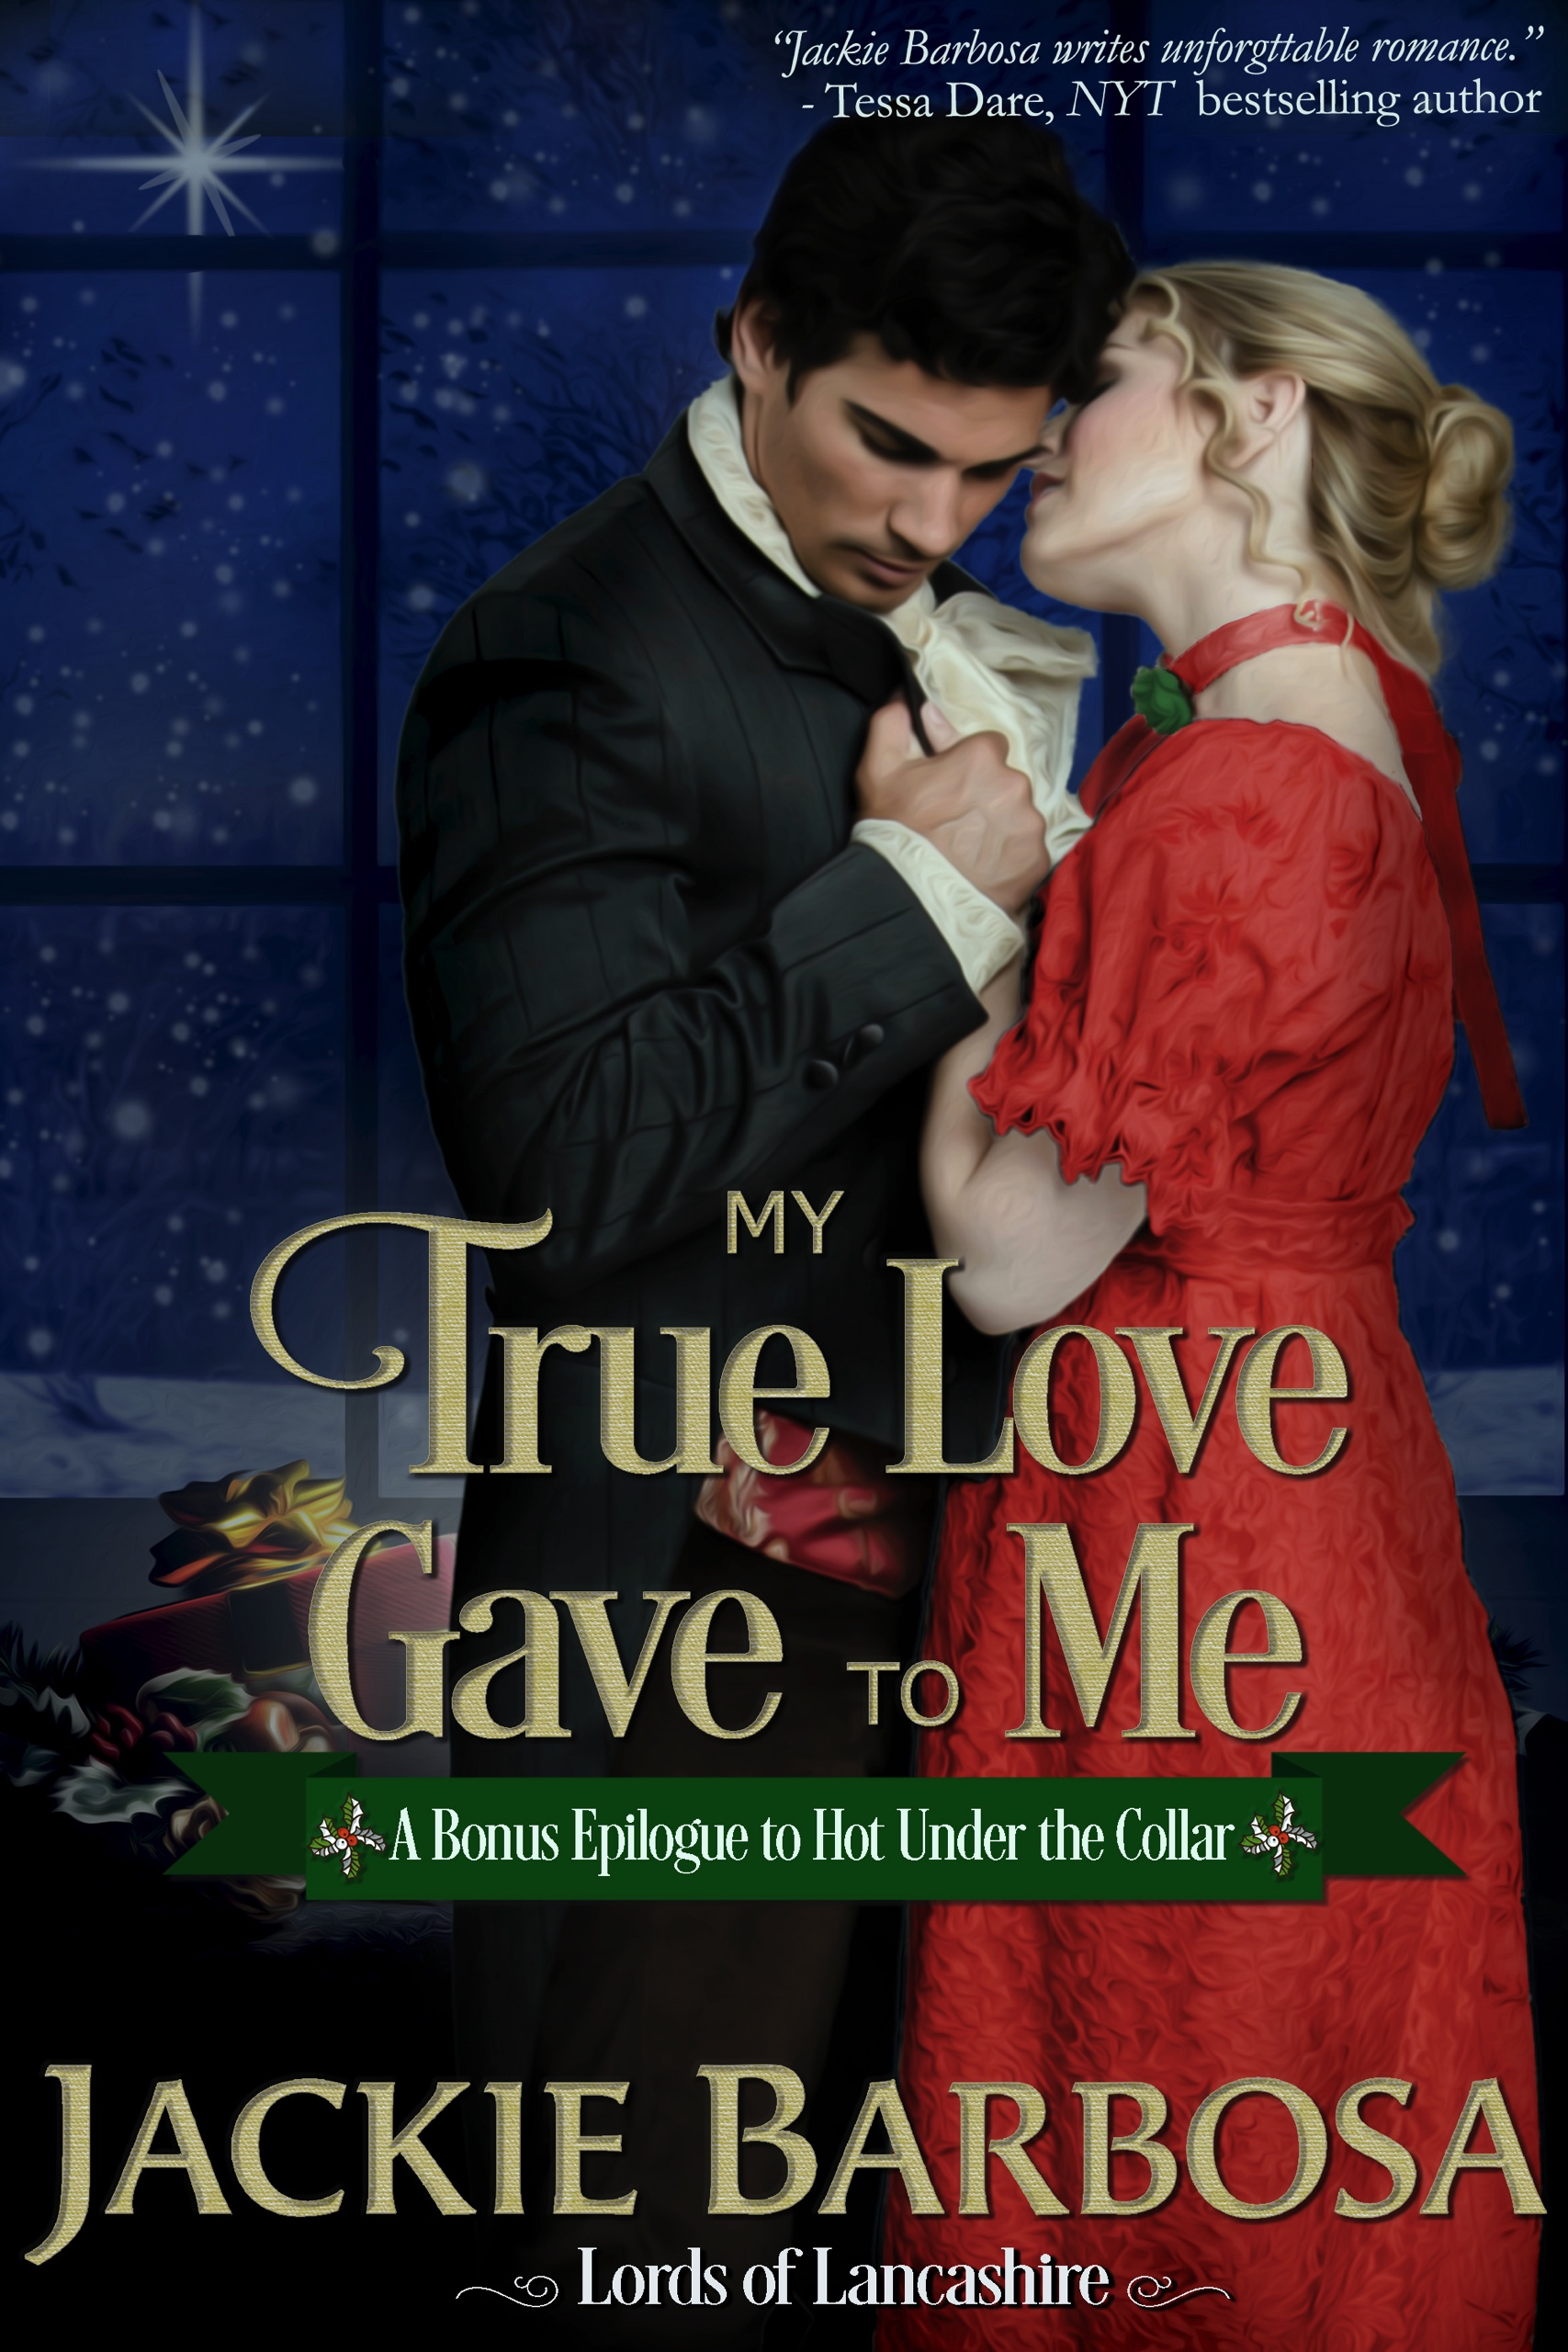 My True Love Gave to Me by Jackie Barbosa